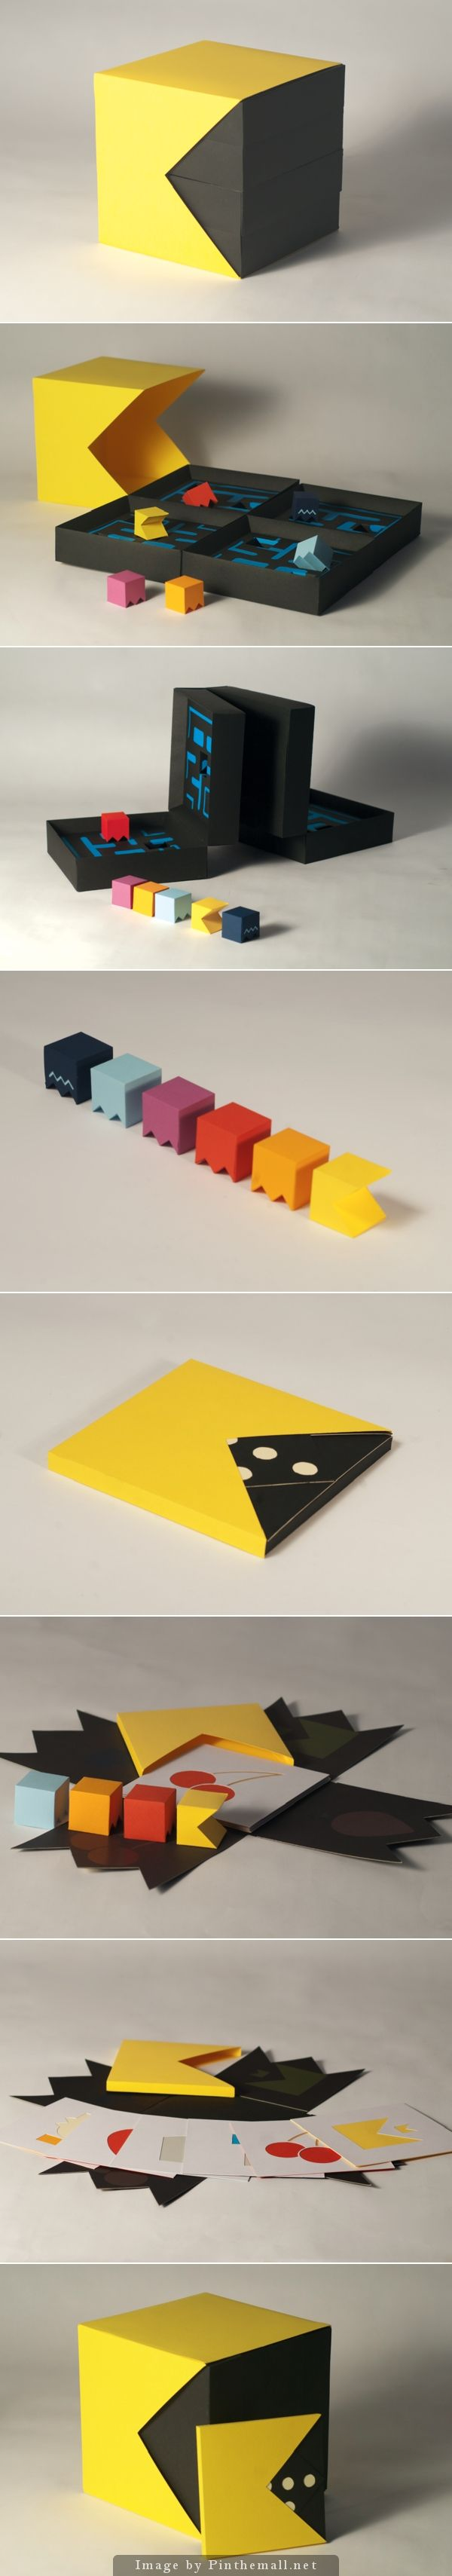 Pacman Packaging by Craig Sutton... - a grouped images picture - Pin Them All